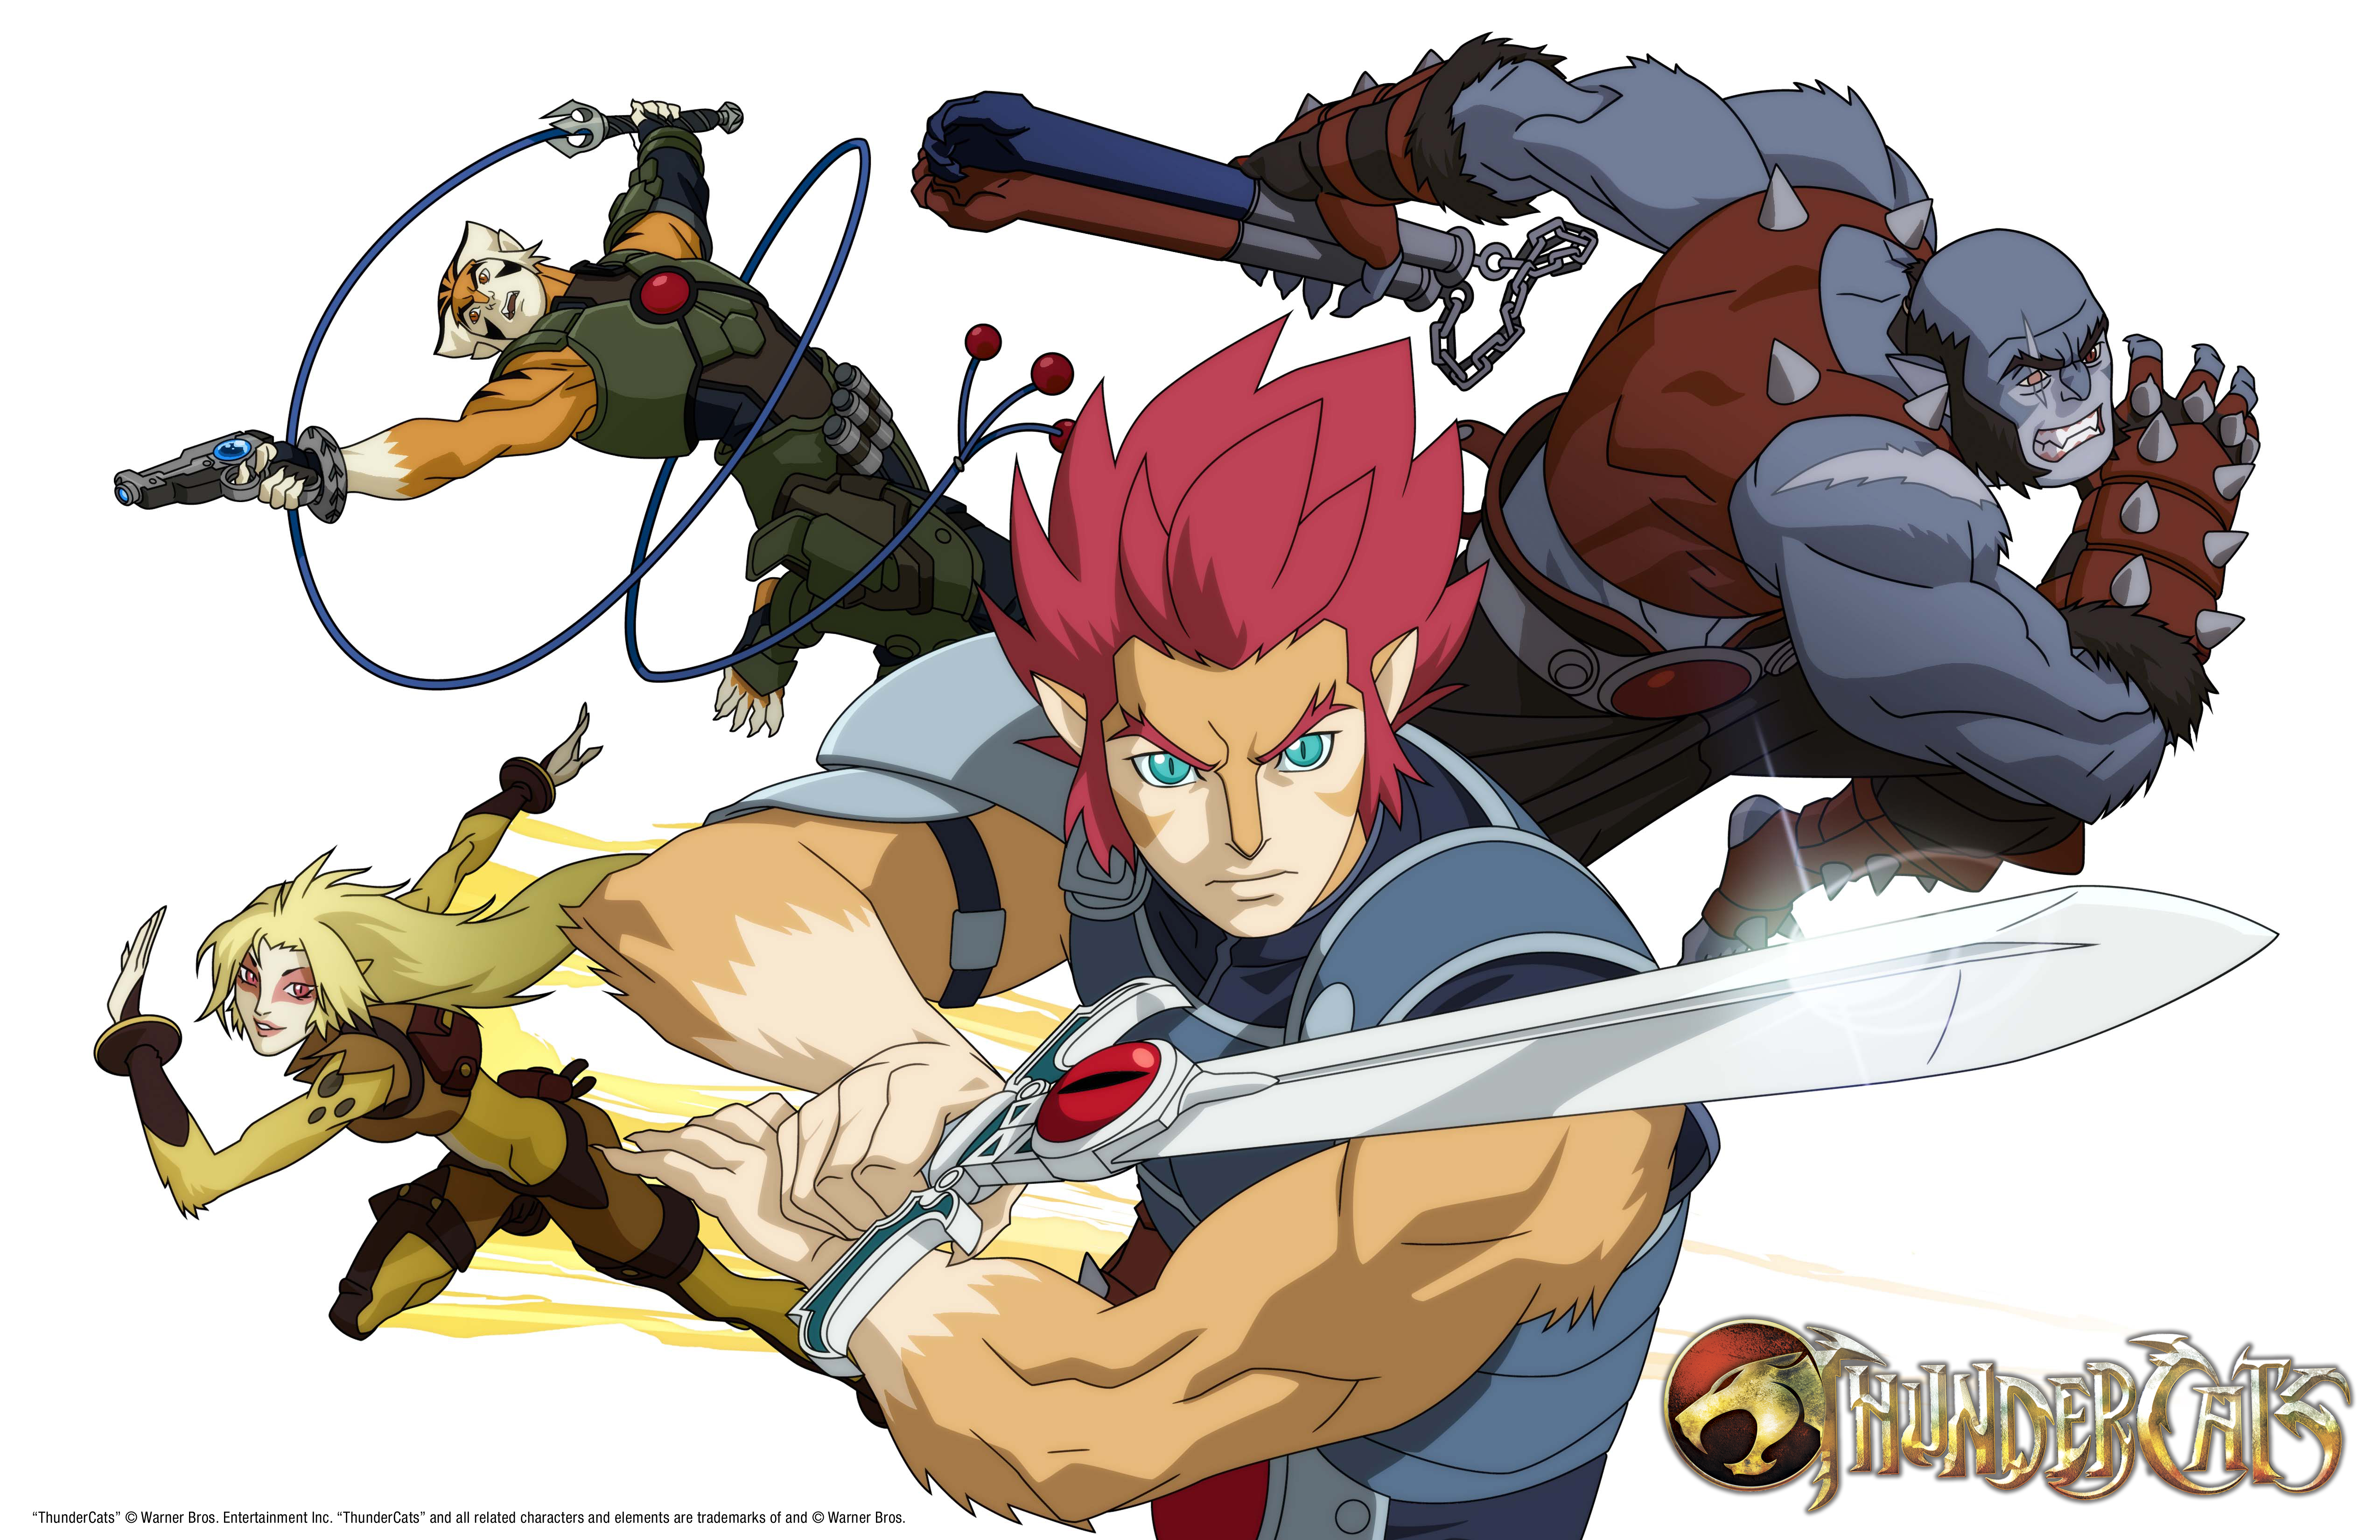 http://collider.com/wp-content/uploads/thundercats-animated-series-image.jpg#.png